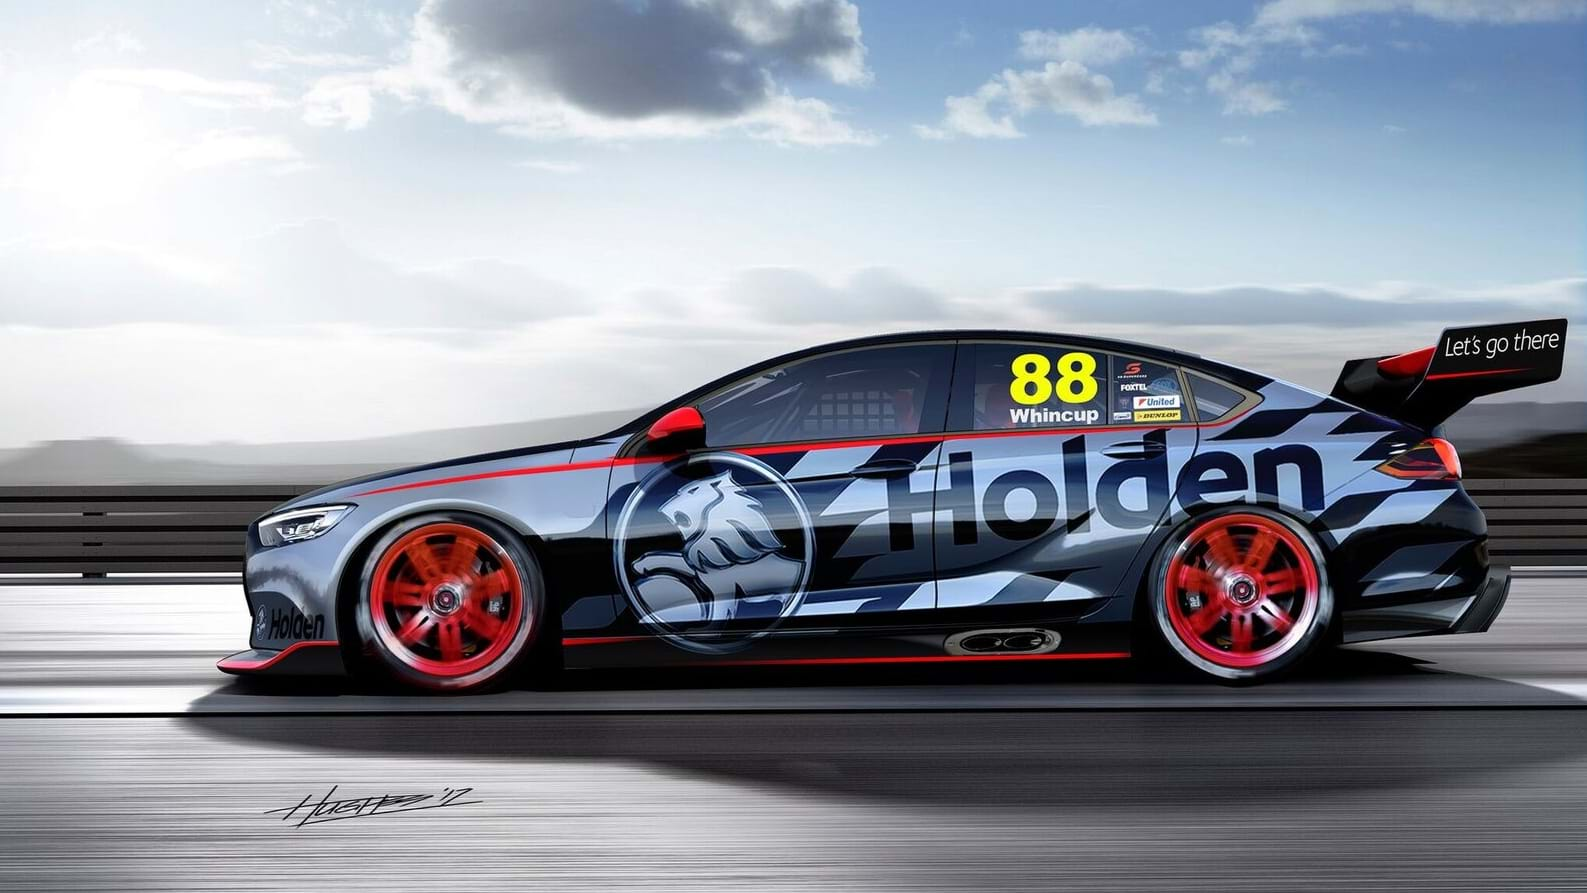 Holden unveils sleek next-gen Commodore Supercar concept